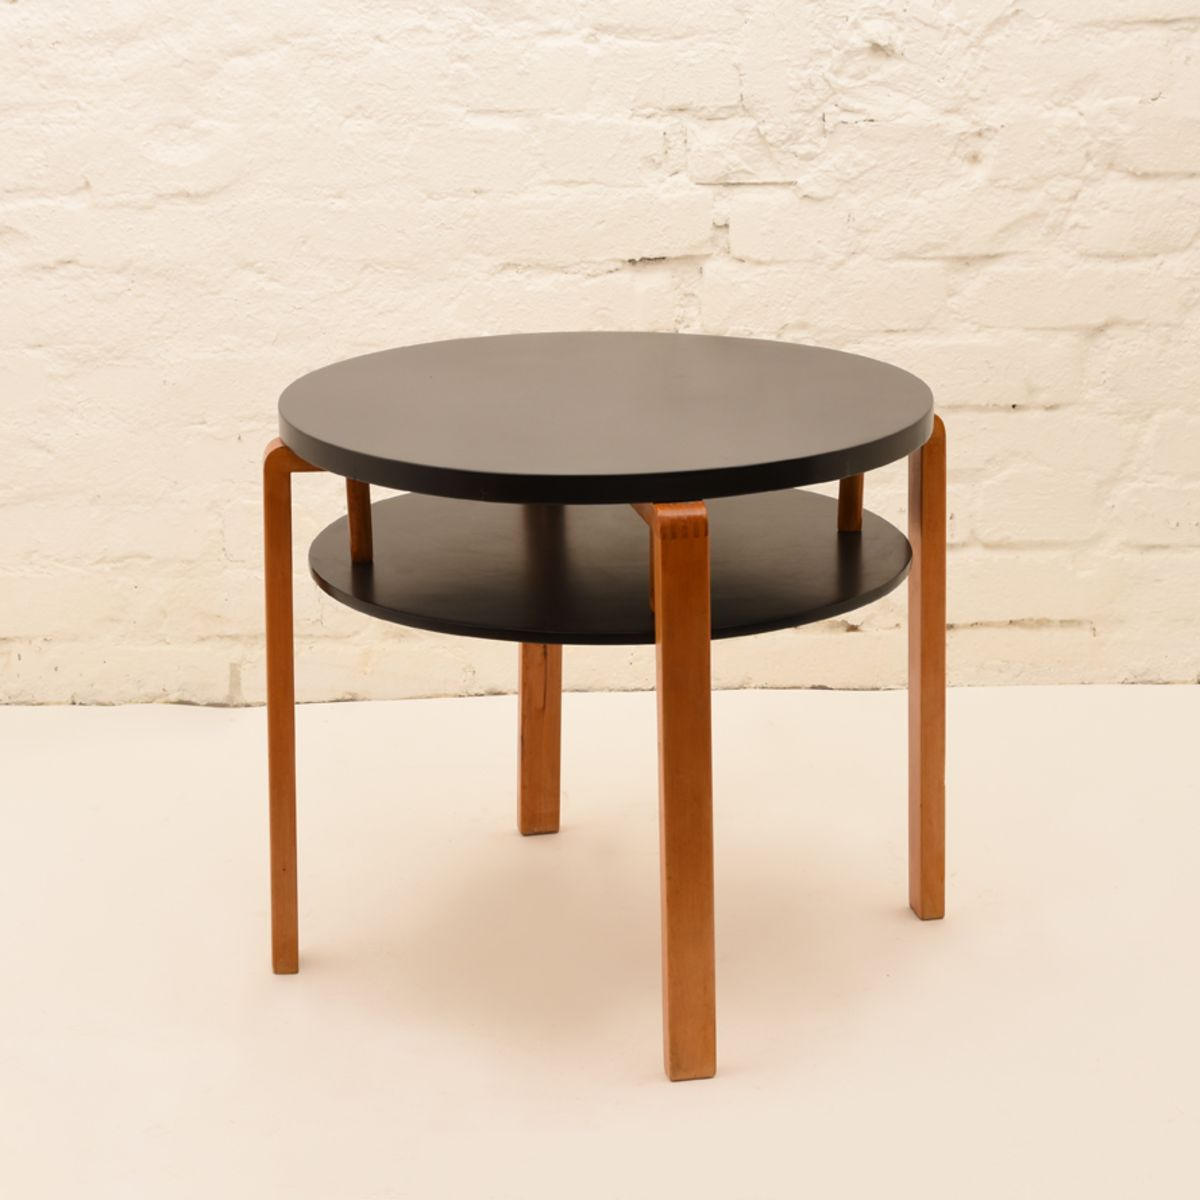 Alvar-Aalto_Club-Table-907B_Lacquared-Black-Birch